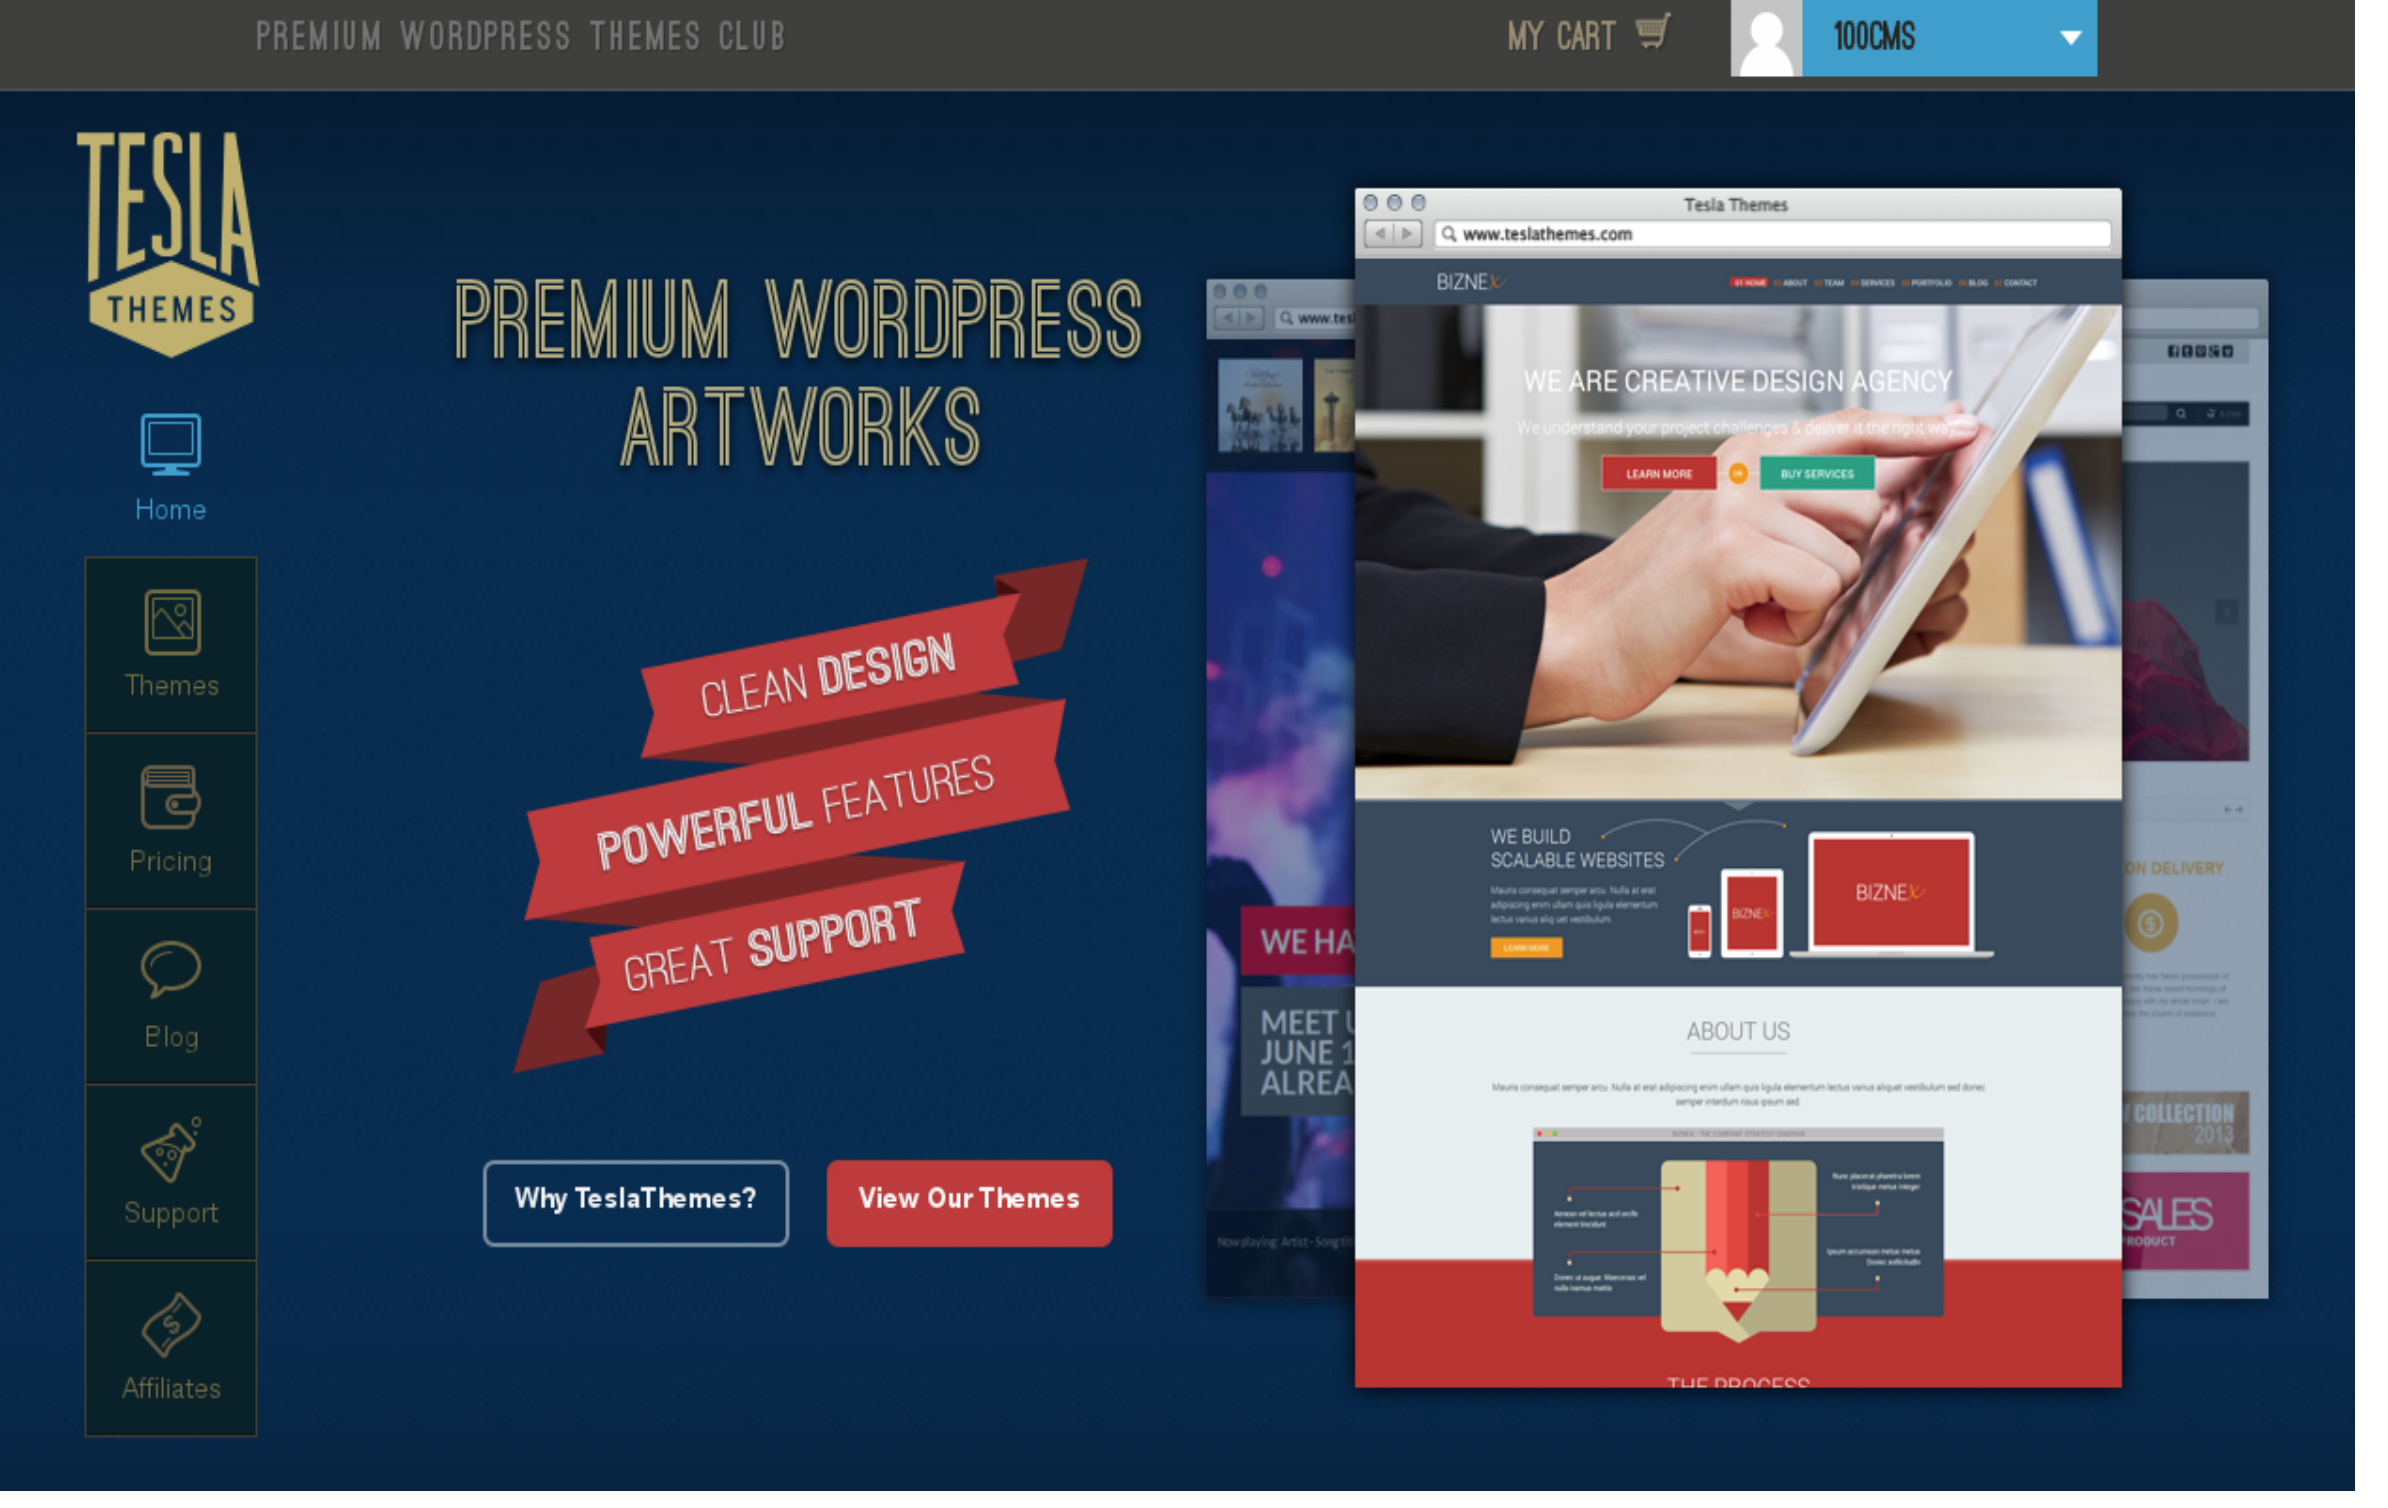 Teslathemes WordPress Theme Club